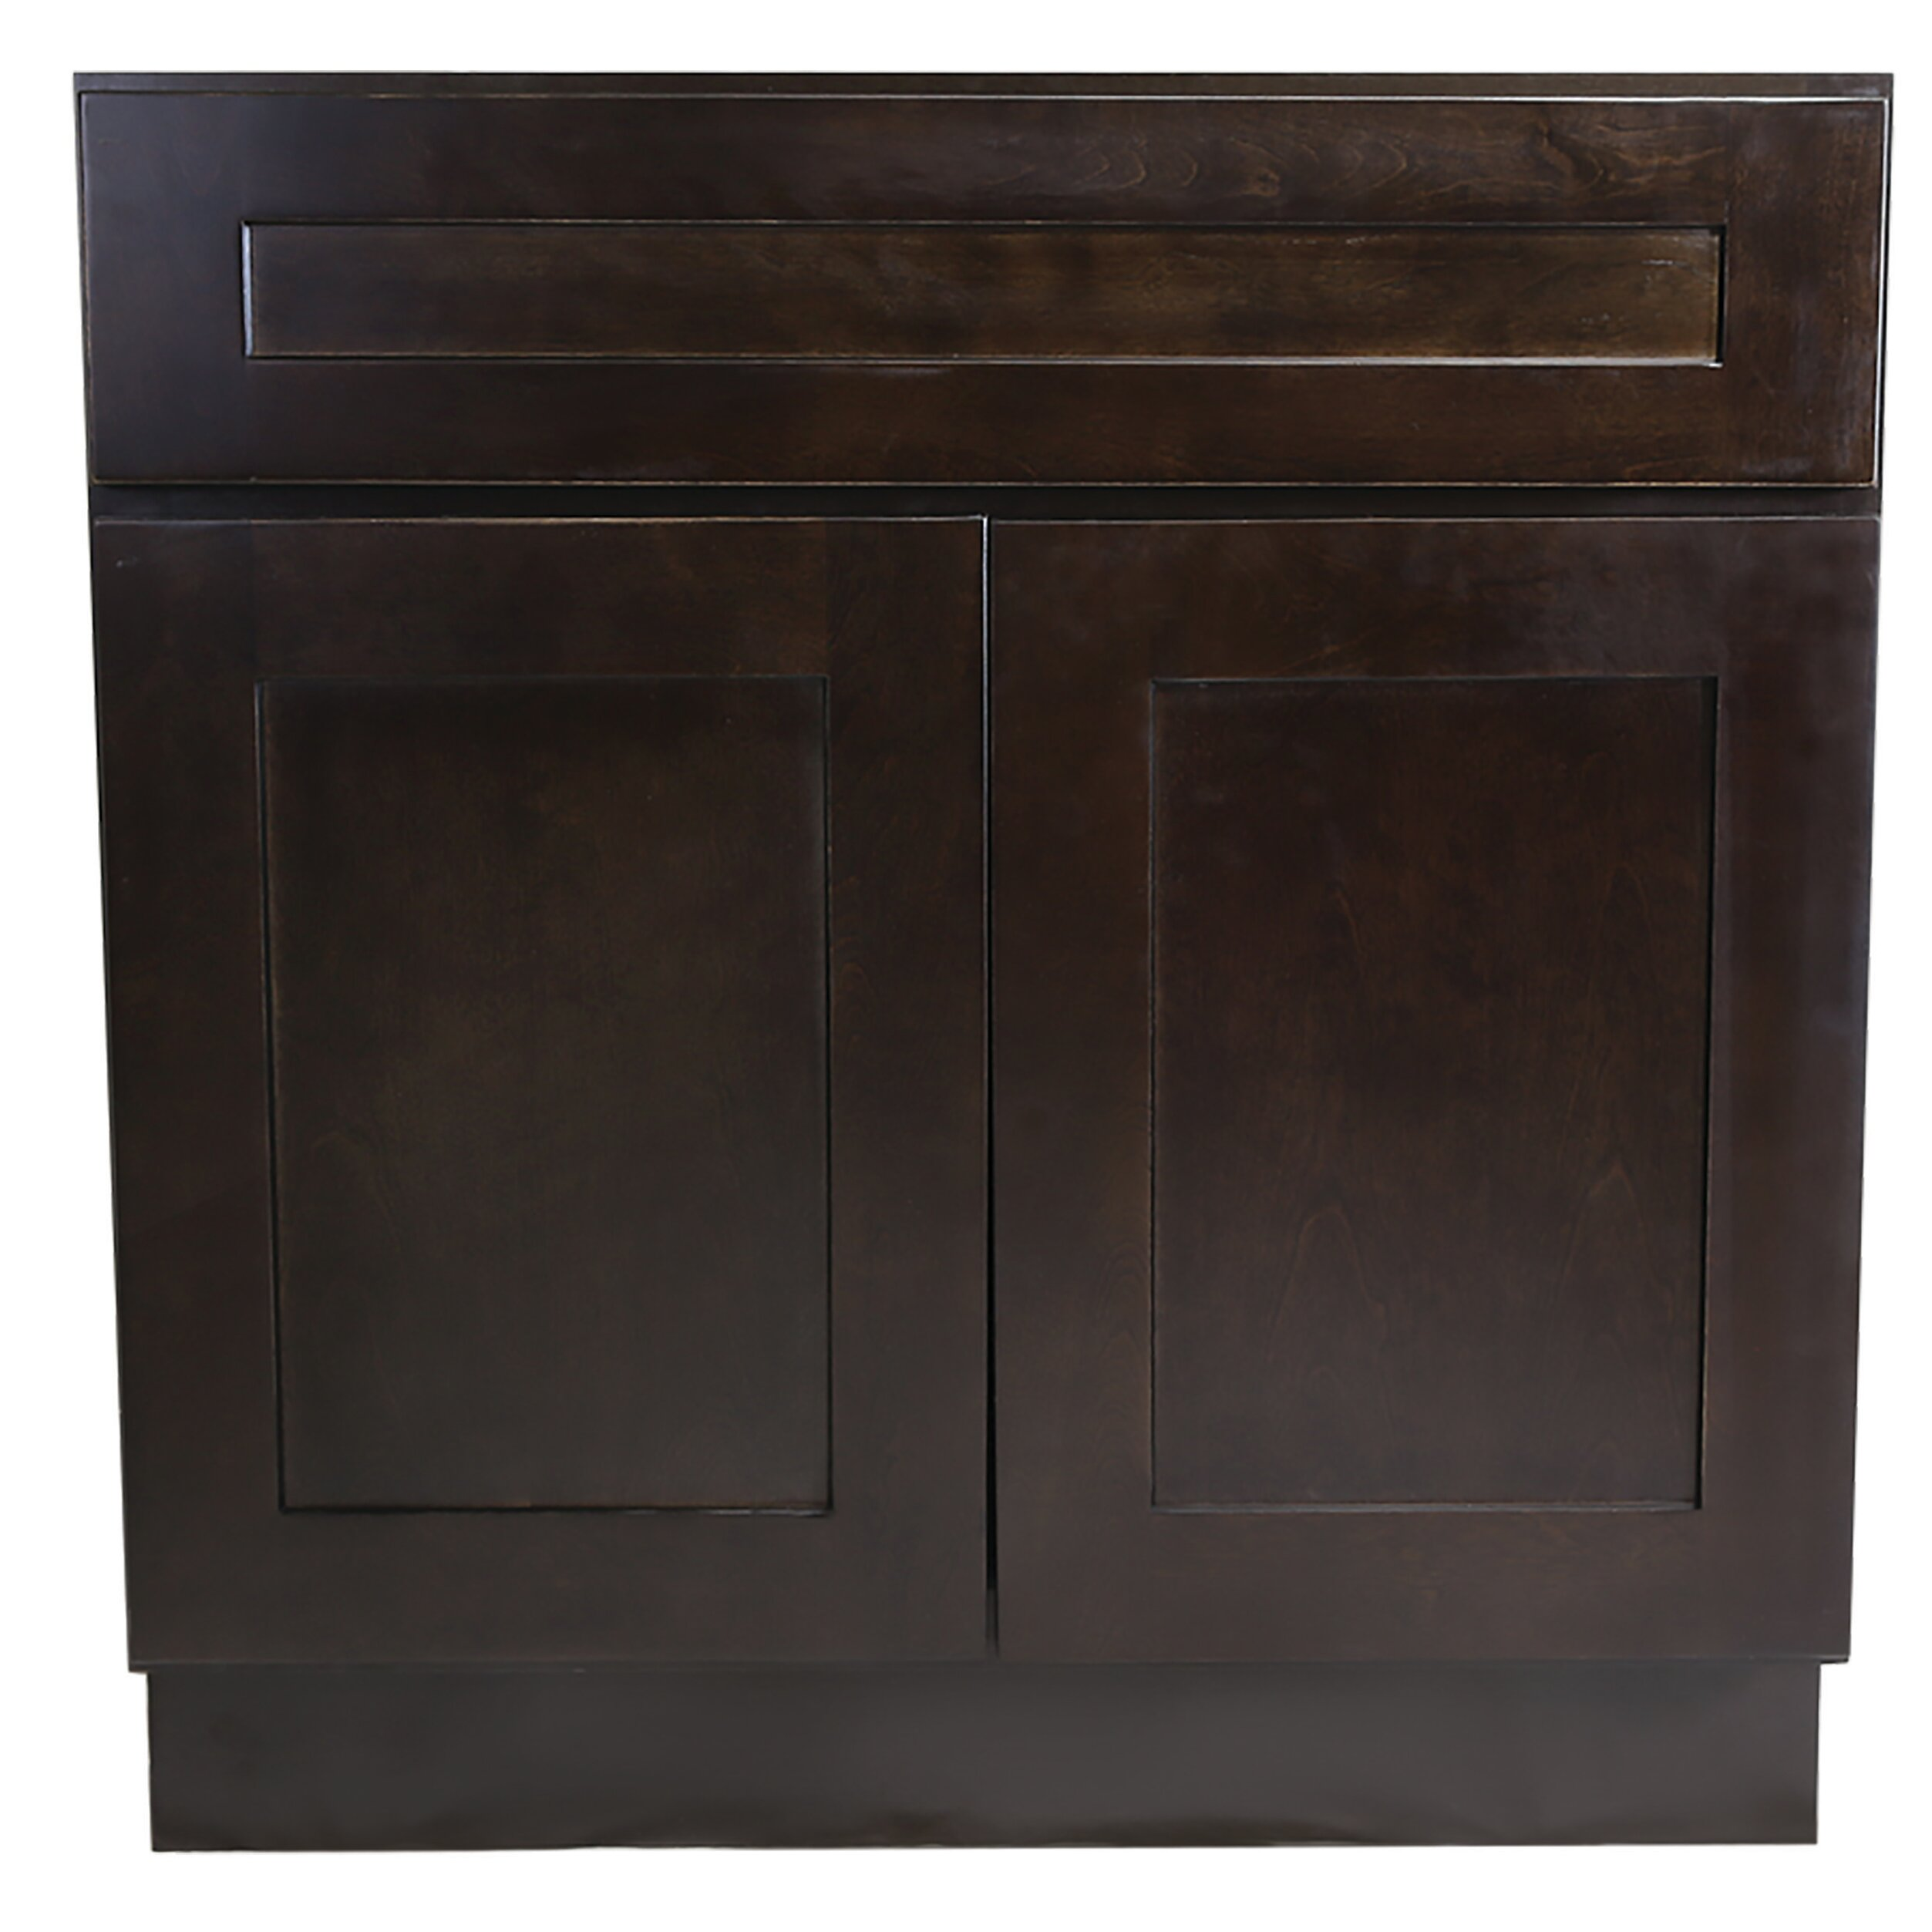 Ebern Designs Frits Ready To Assemble 48x24x34 1 2 In Shaker Style 2 Door Sink Base Cabinet In Espresso Wayfair